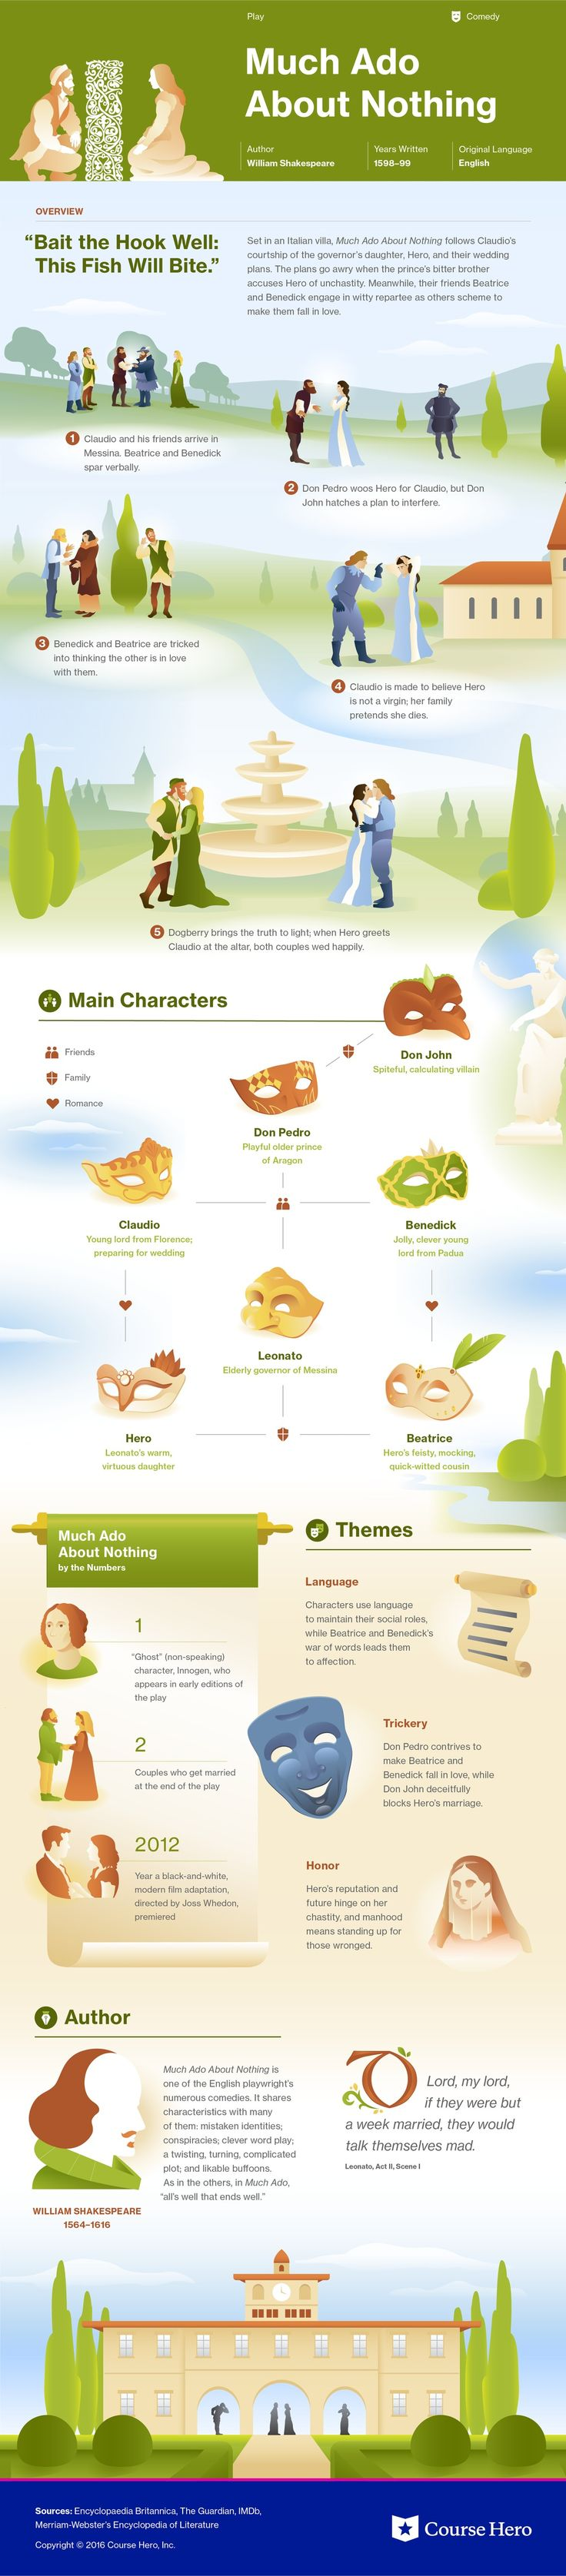 Editingsoftware clipart literature class 25+ Nothing Infographic English on